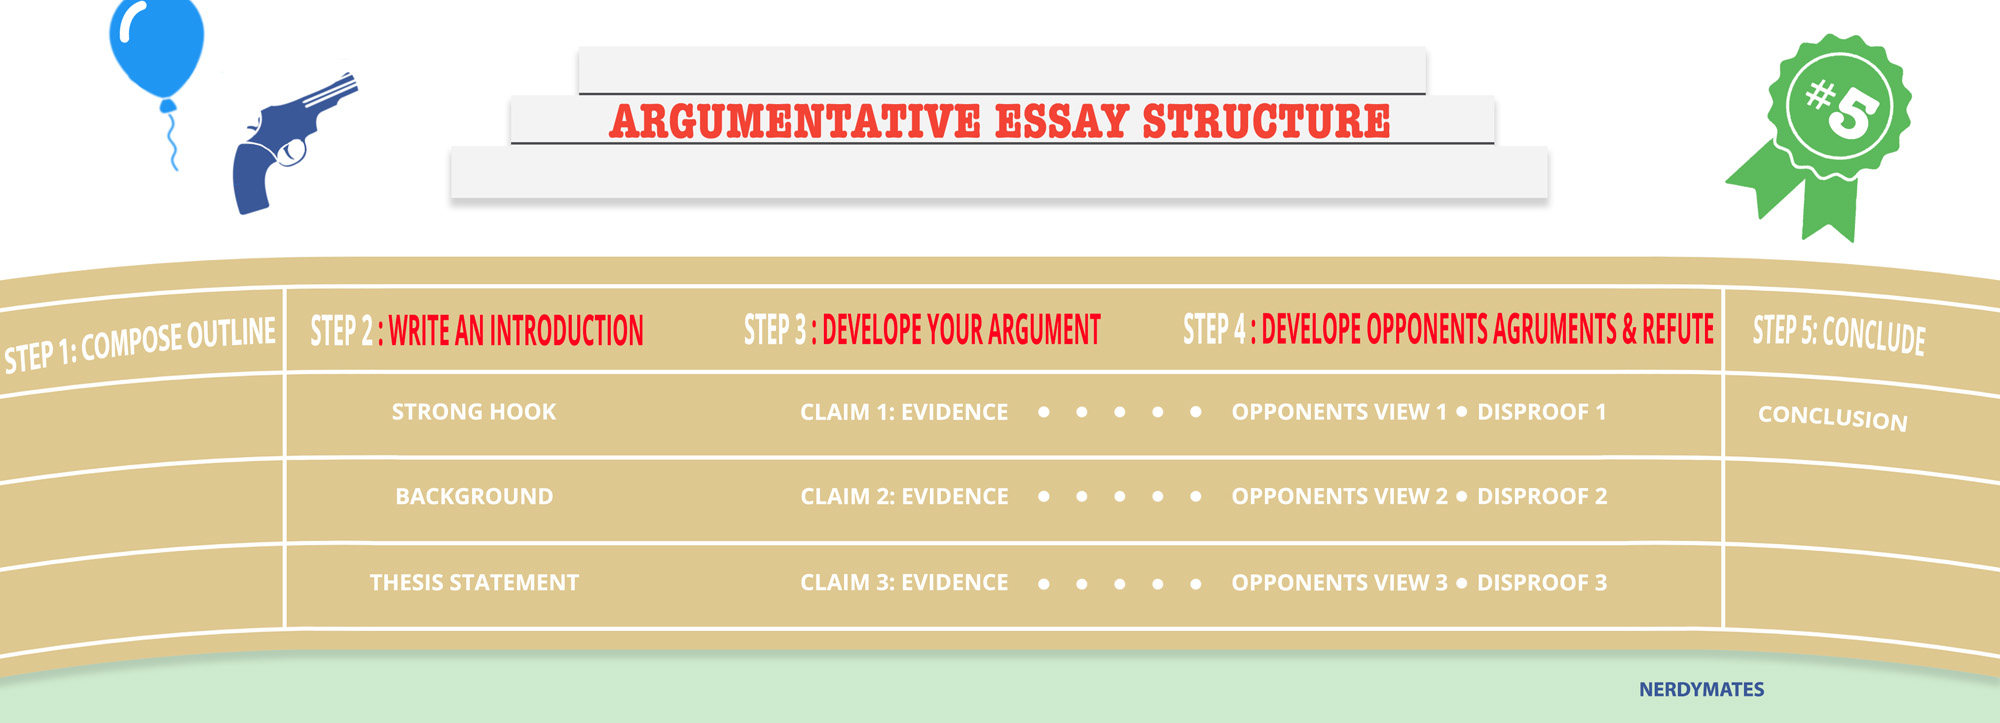 how to write an argumentative essay prompts topic ideas   how to write a good argumentative essay should divide the paper into separate parts to understand the purposes of each section